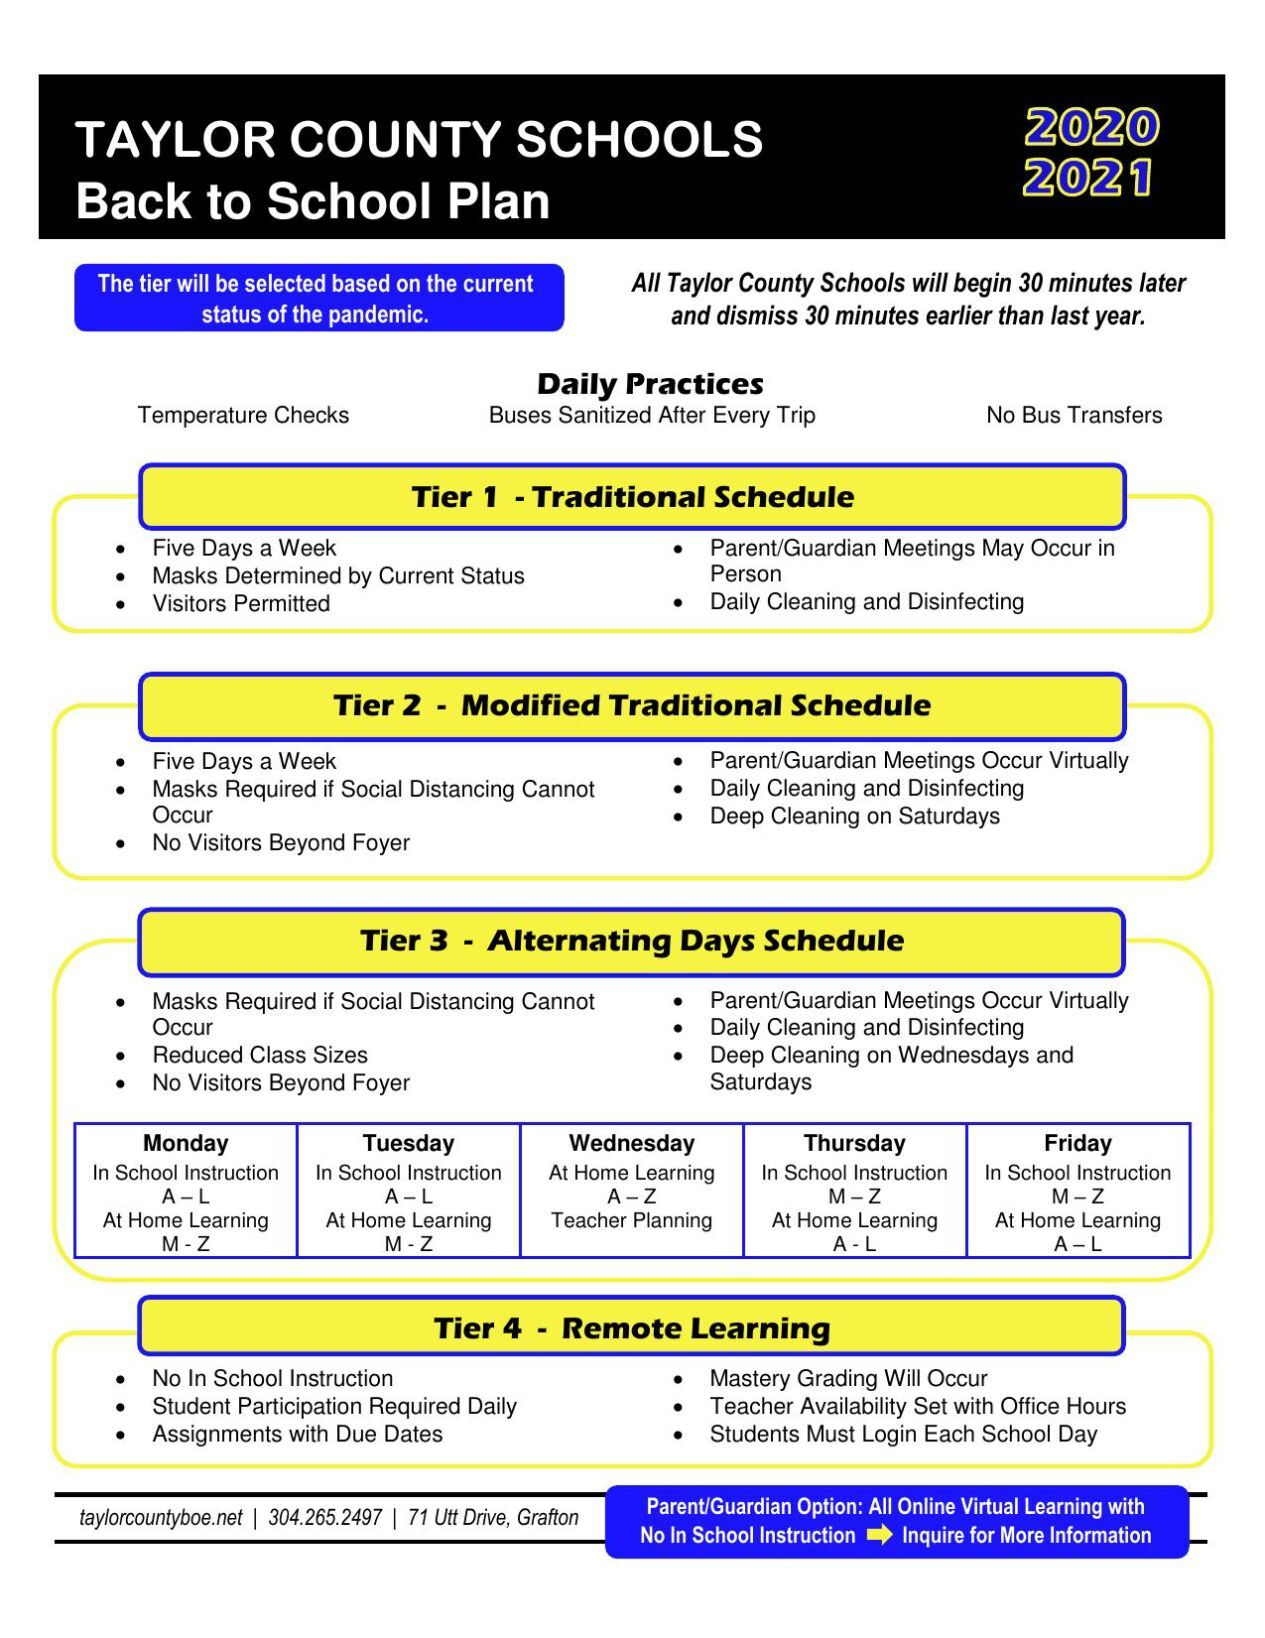 Taylor County Schools current re-entry plan